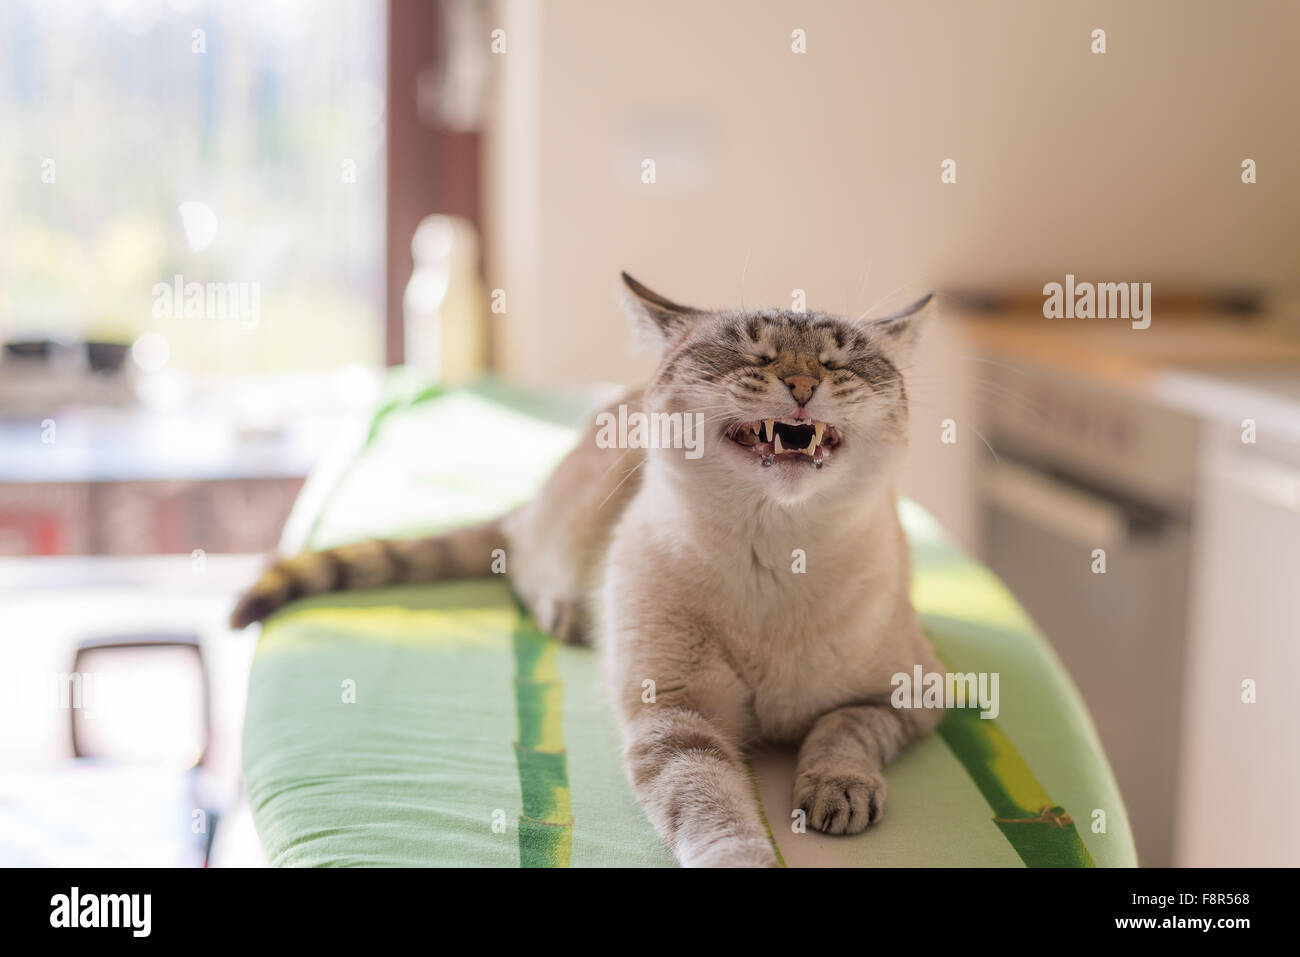 Snarling domestic cat with half-open mouth. Shot indoor in backlight with natural light. Very shallow depth of field, - Stock Image